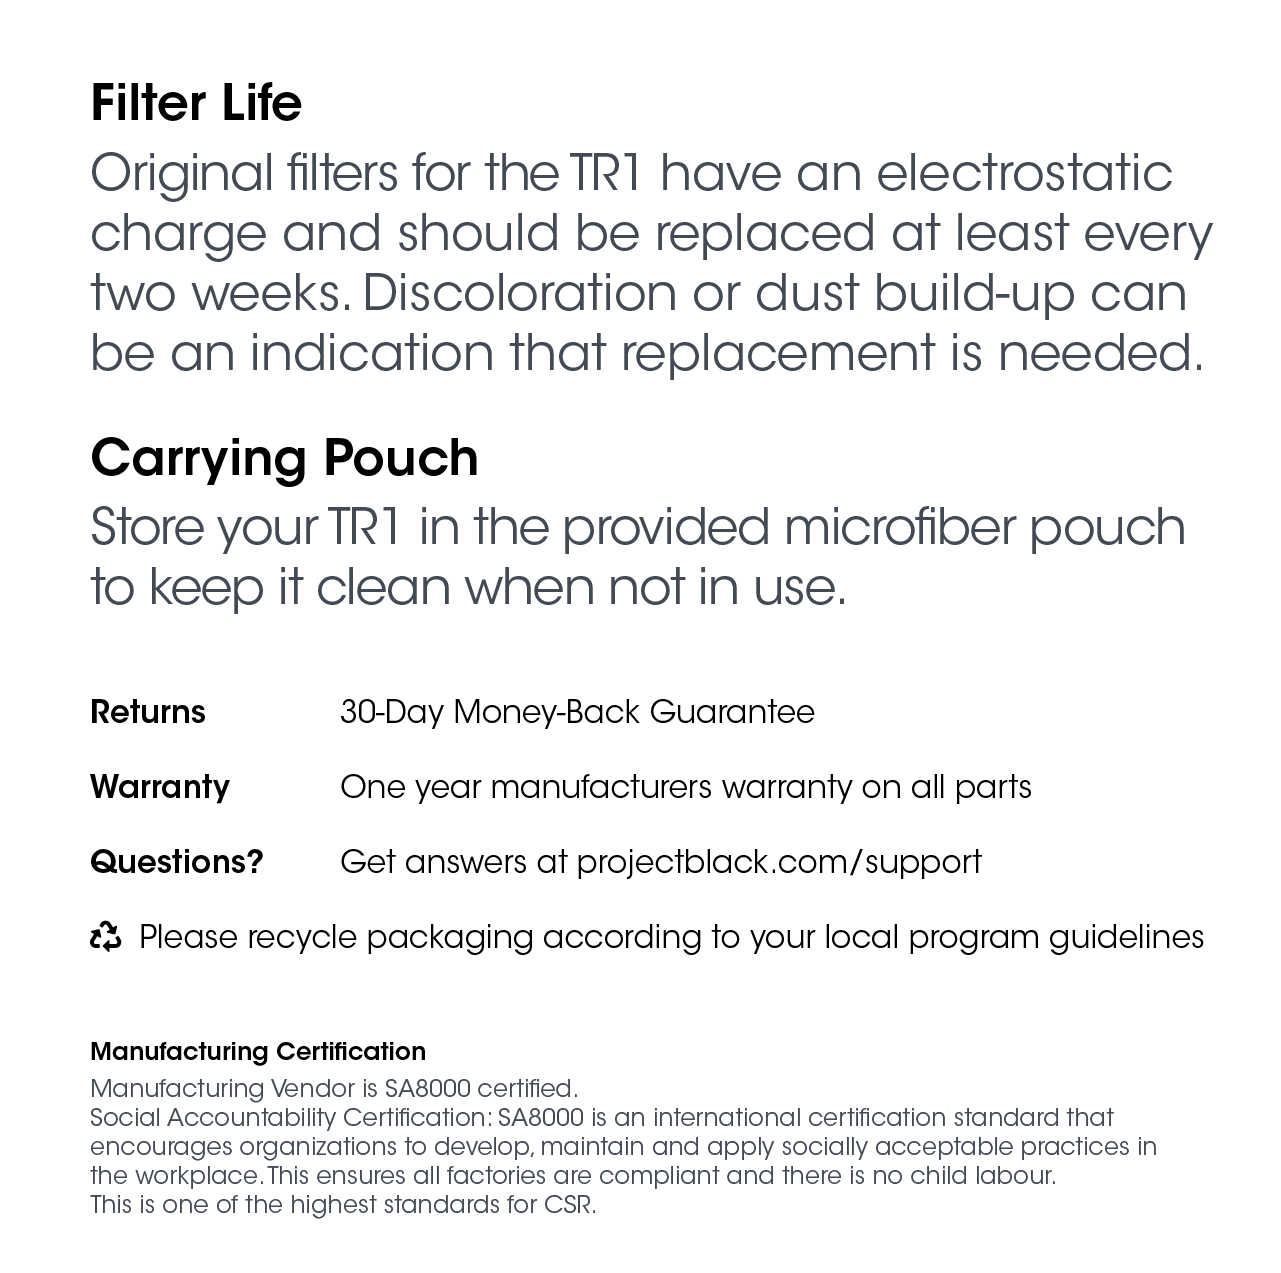 Filter information page of the TR1 manual.